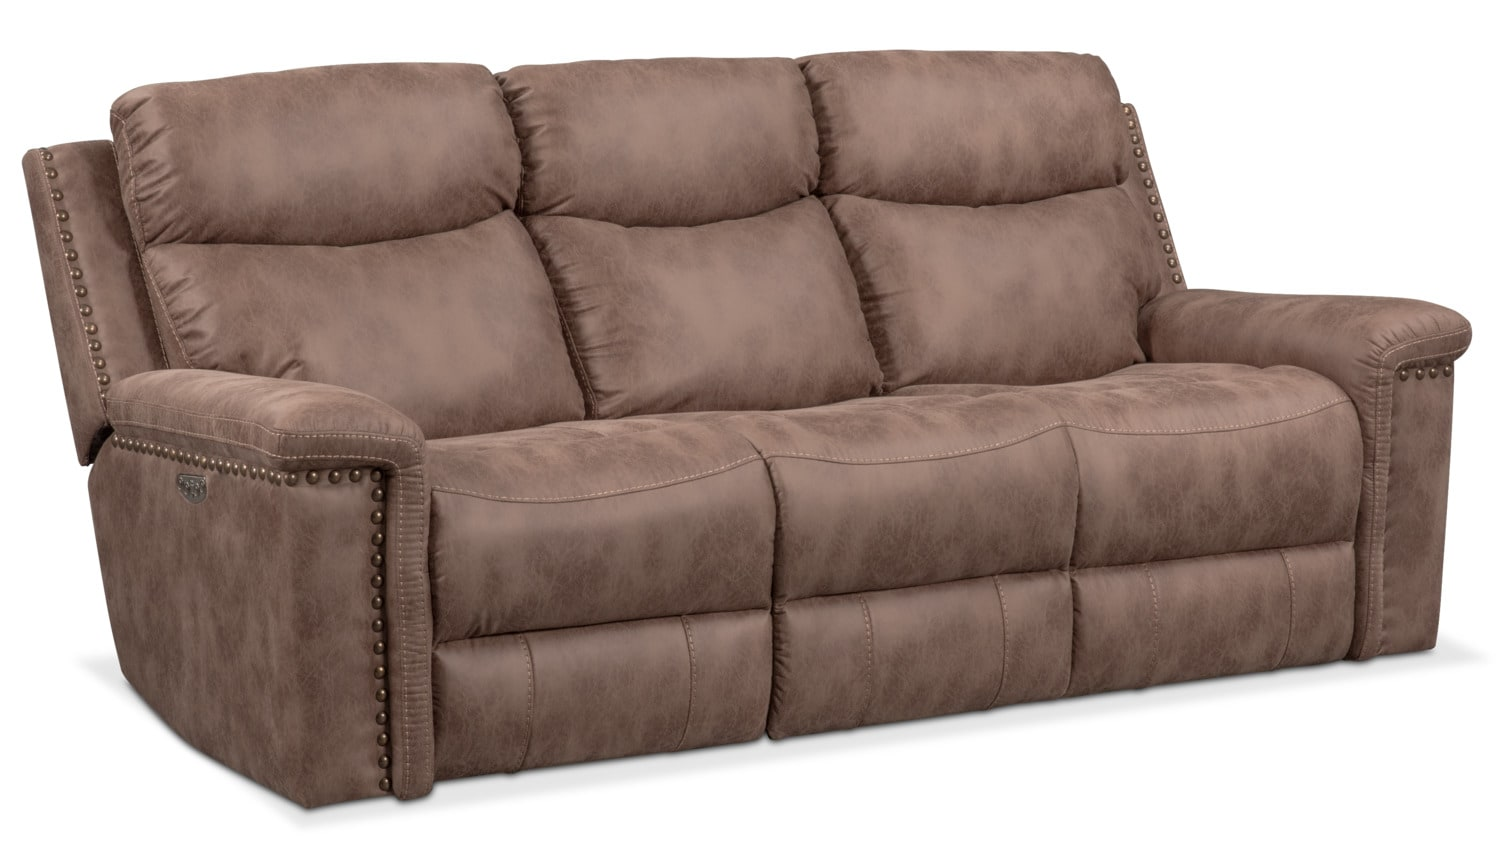 gladiator power dual reclining sofa reviews small size bed montana american signature furniture